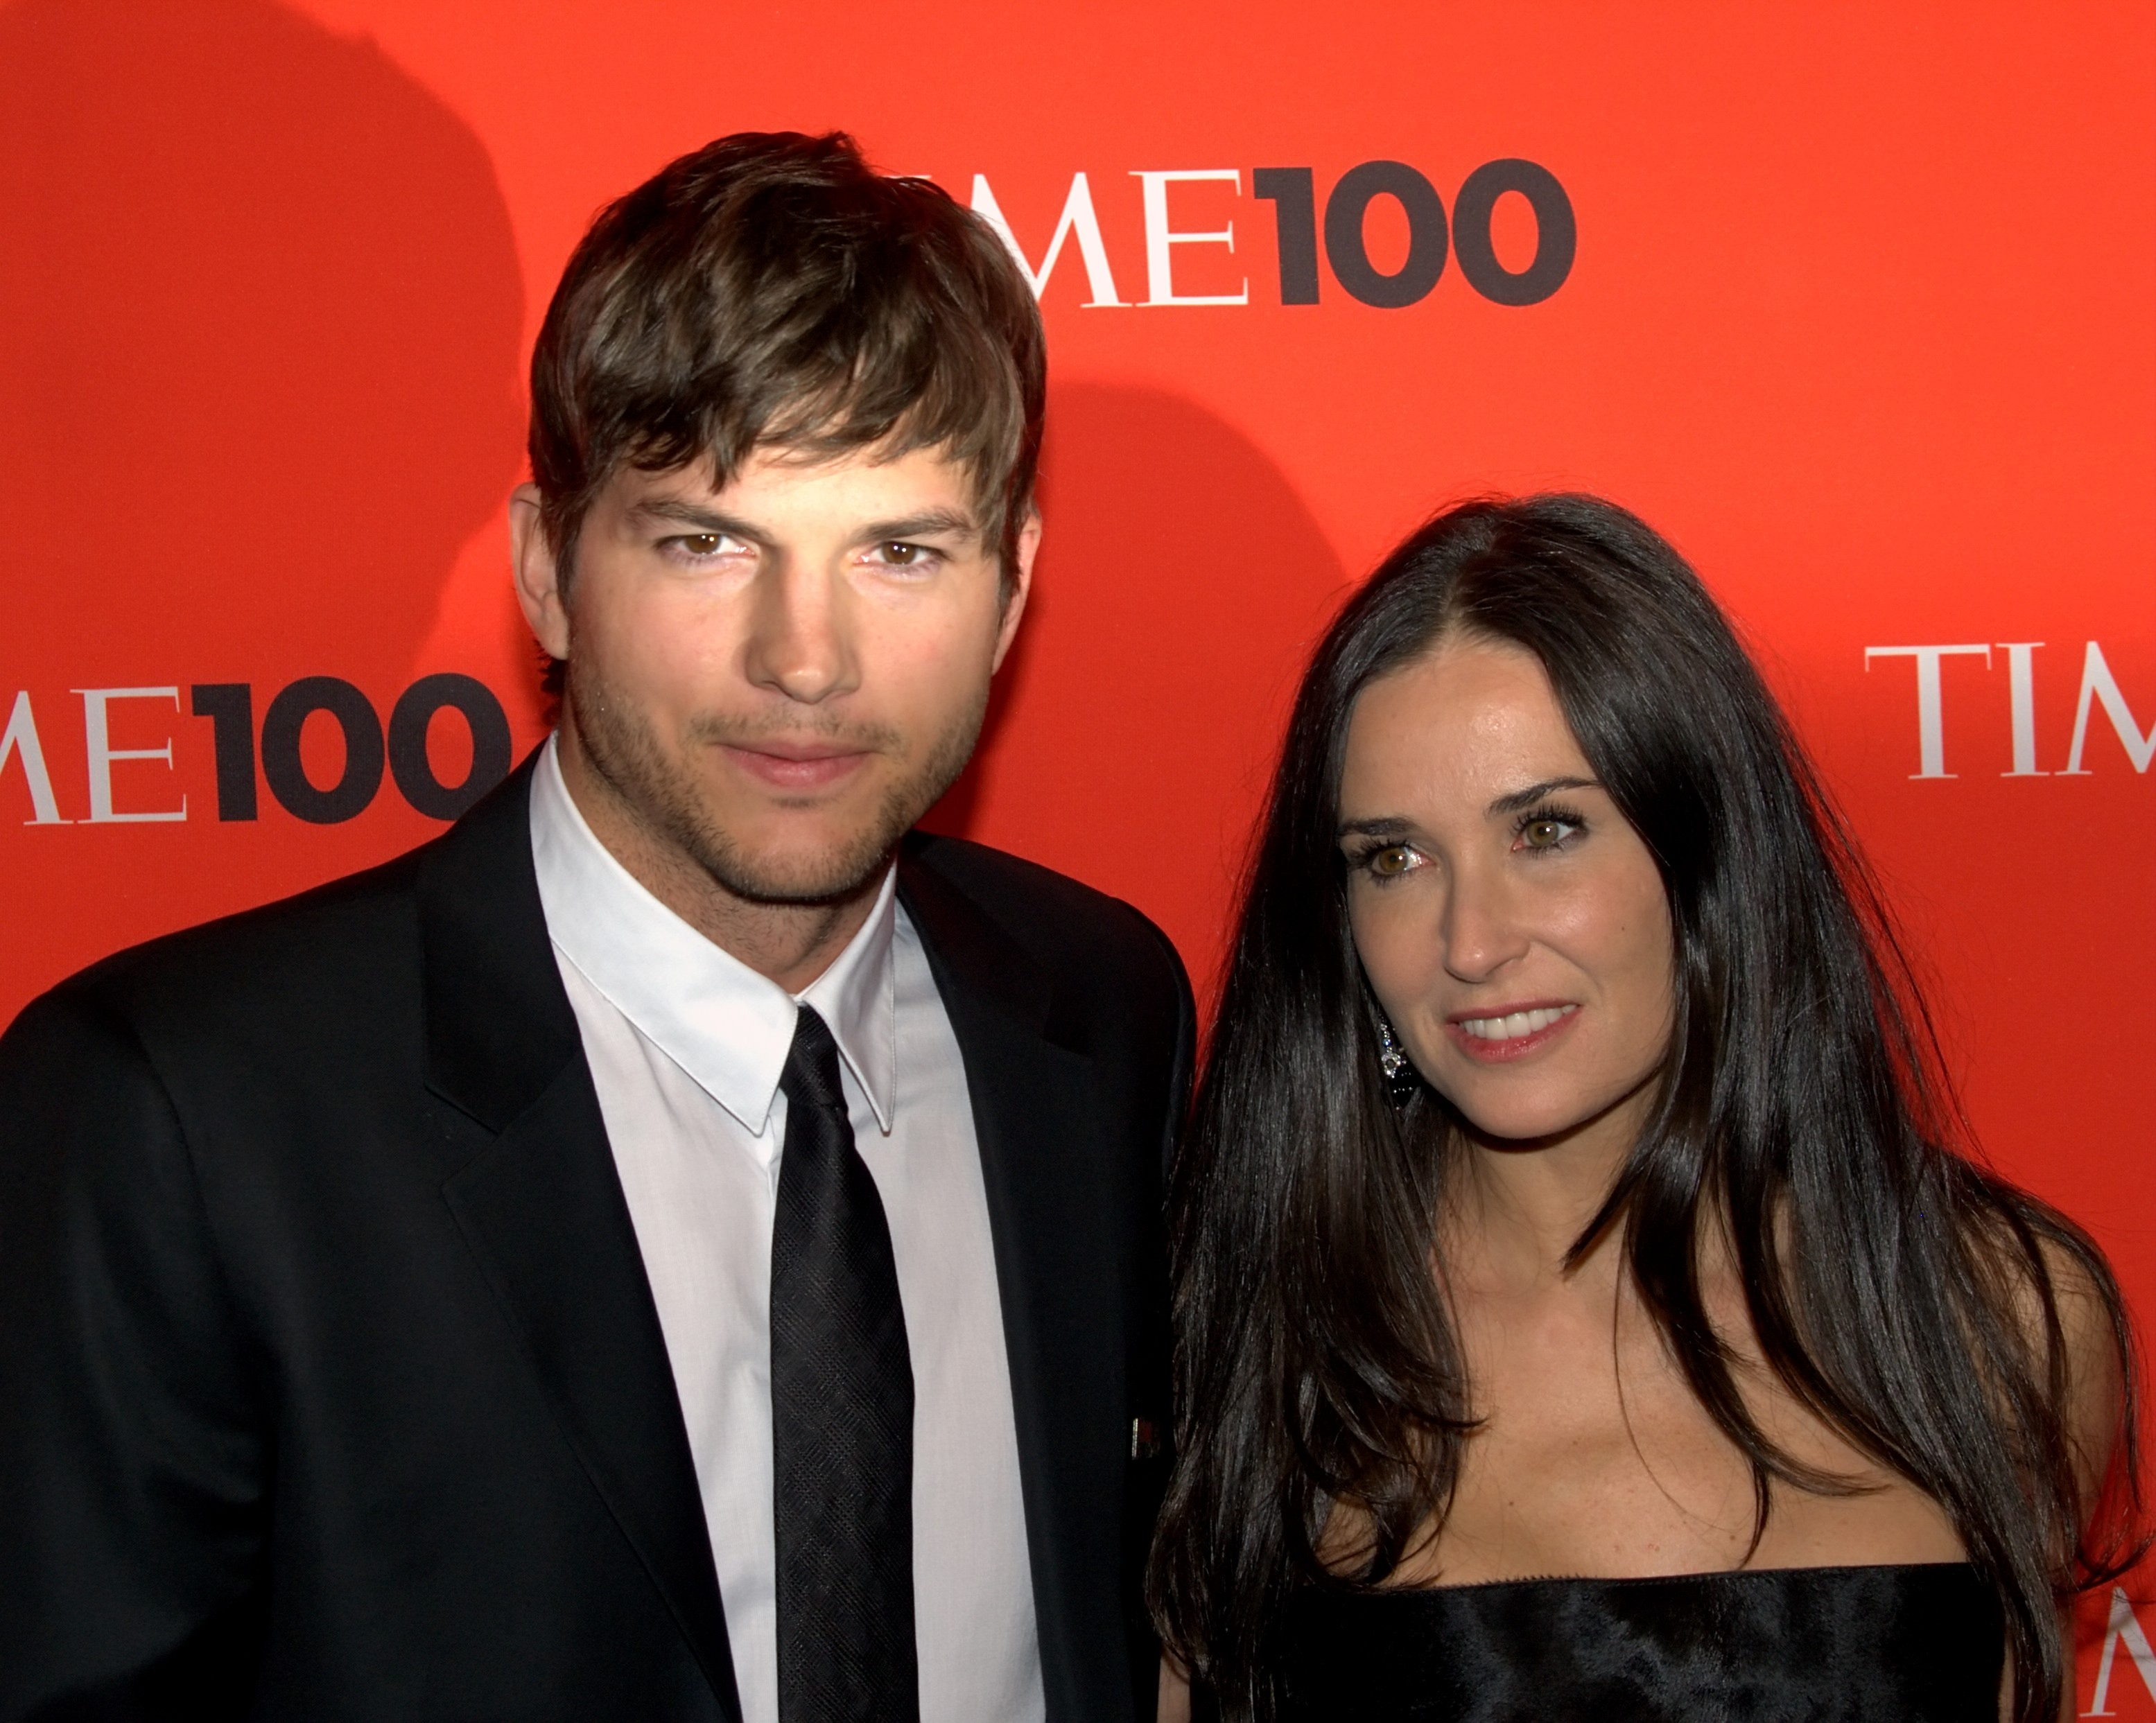 Demi Moore And Ashton Kutcher In 6m Divorce Row Demi Moore And Ashton Kutcher In 6m Divorce Row new pics